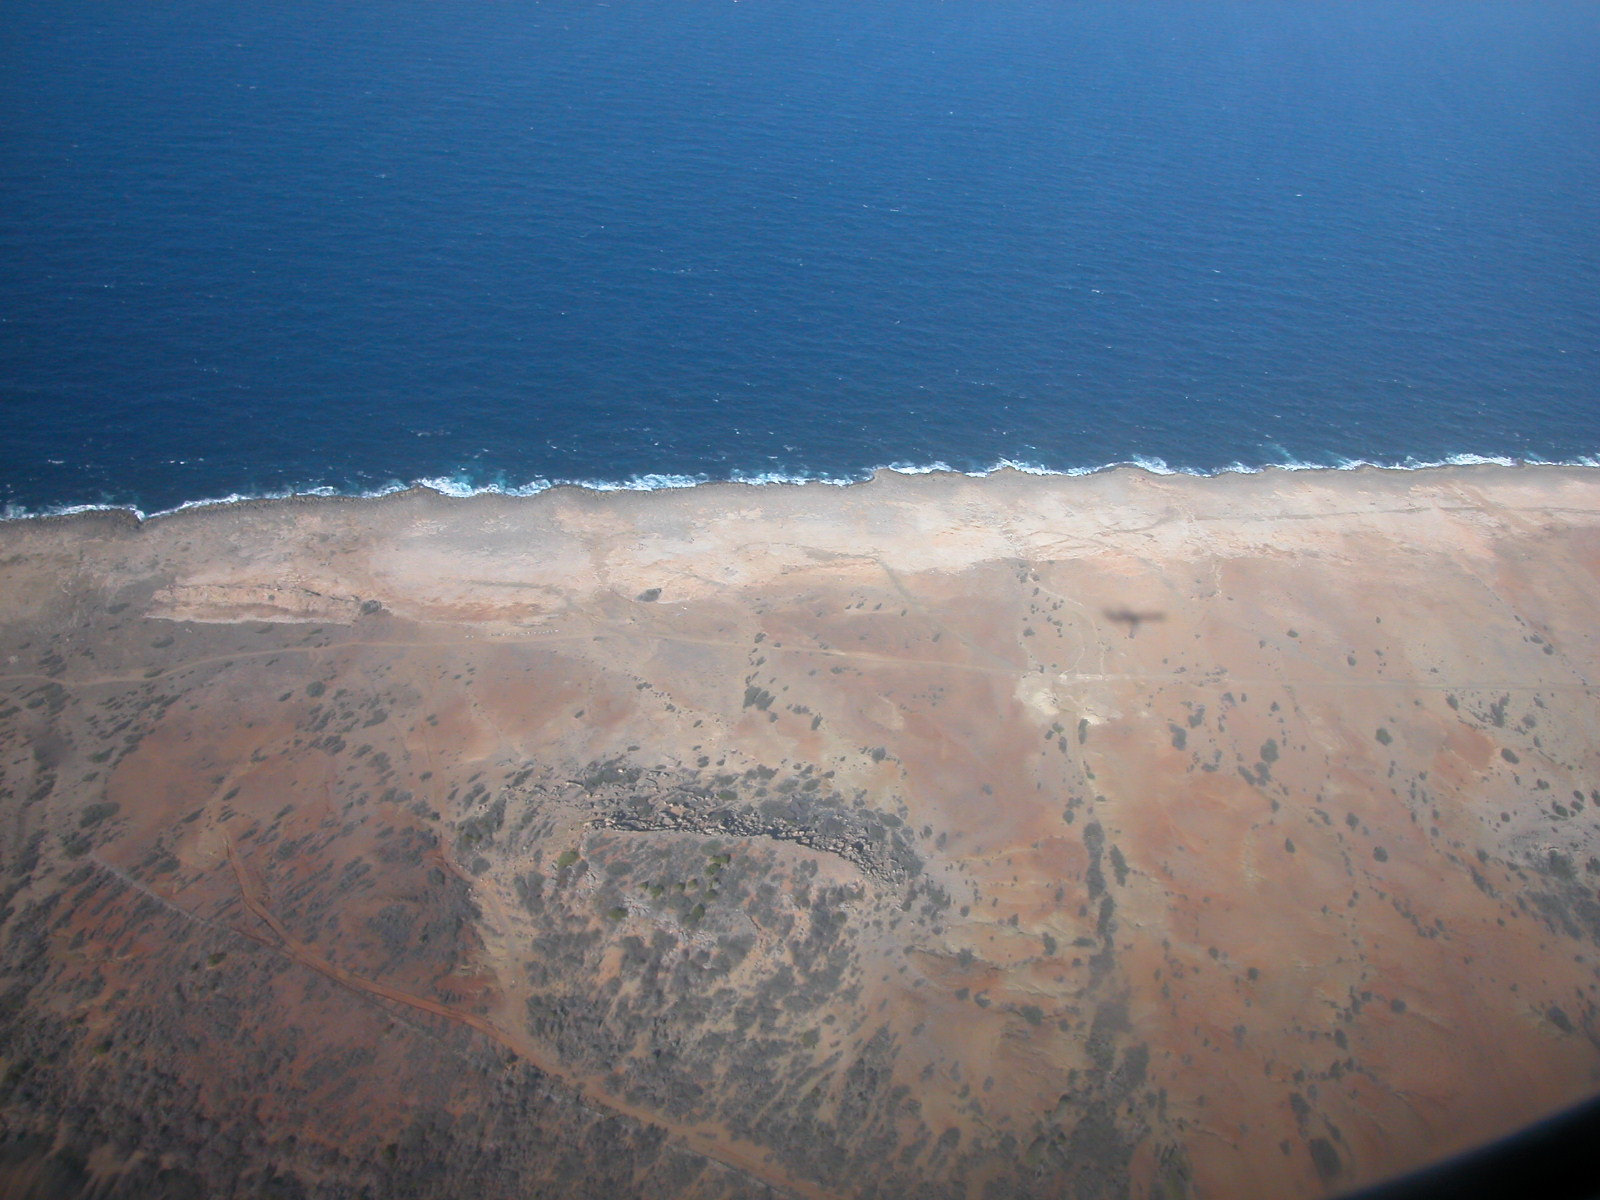 landscape from airplane aerial photo roads brown sea waves plane shadow